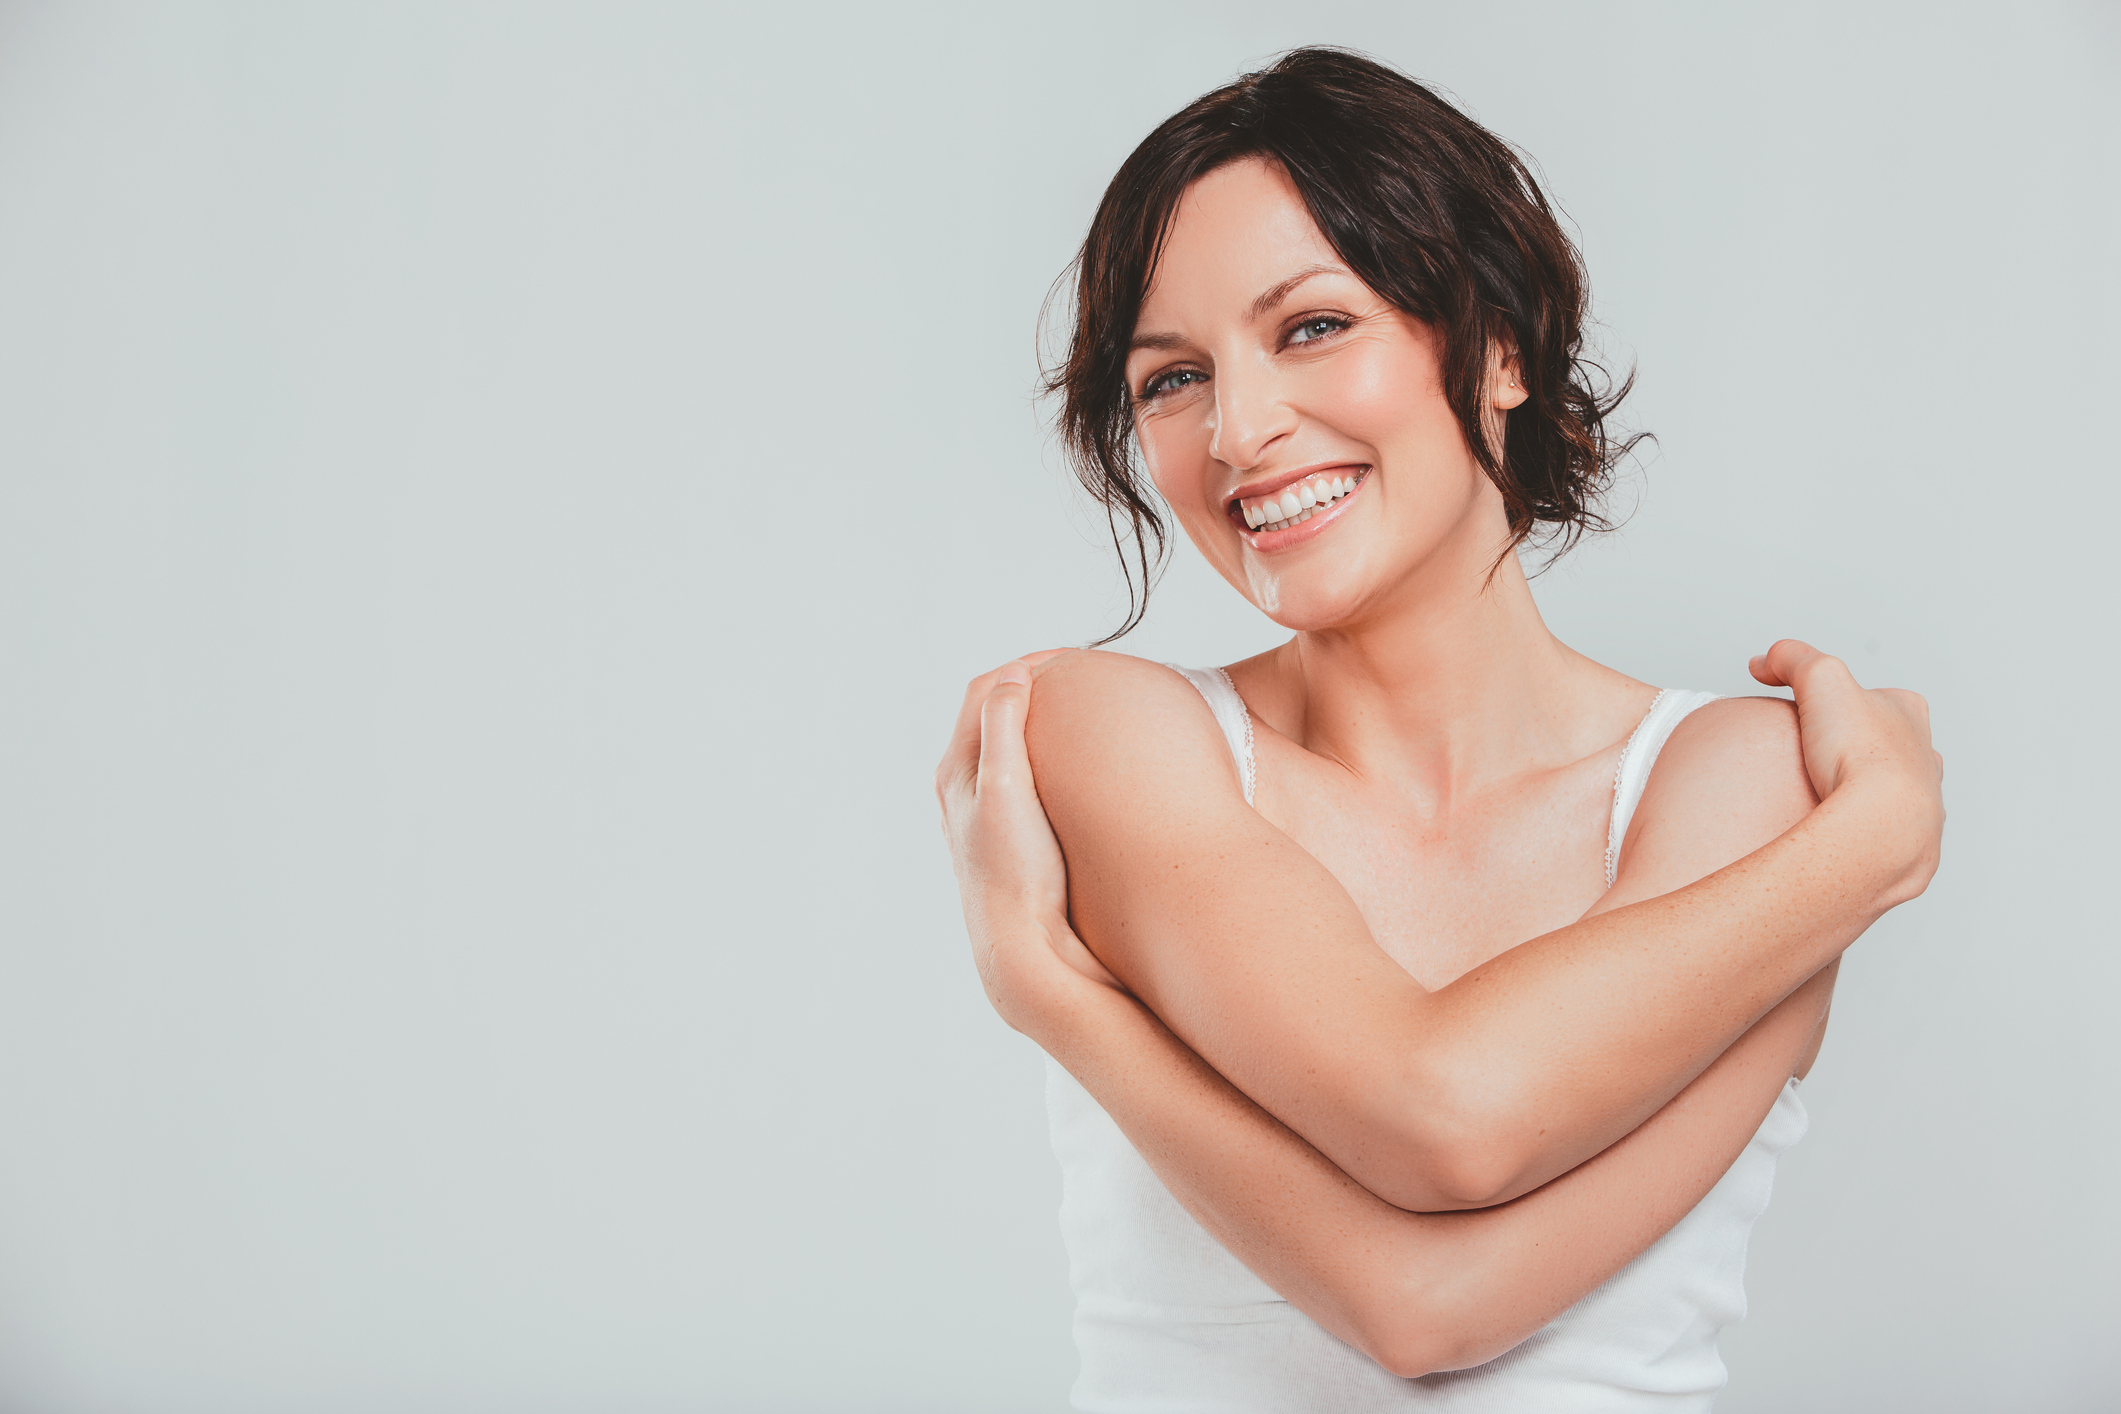 Woman hugging herself while smiling